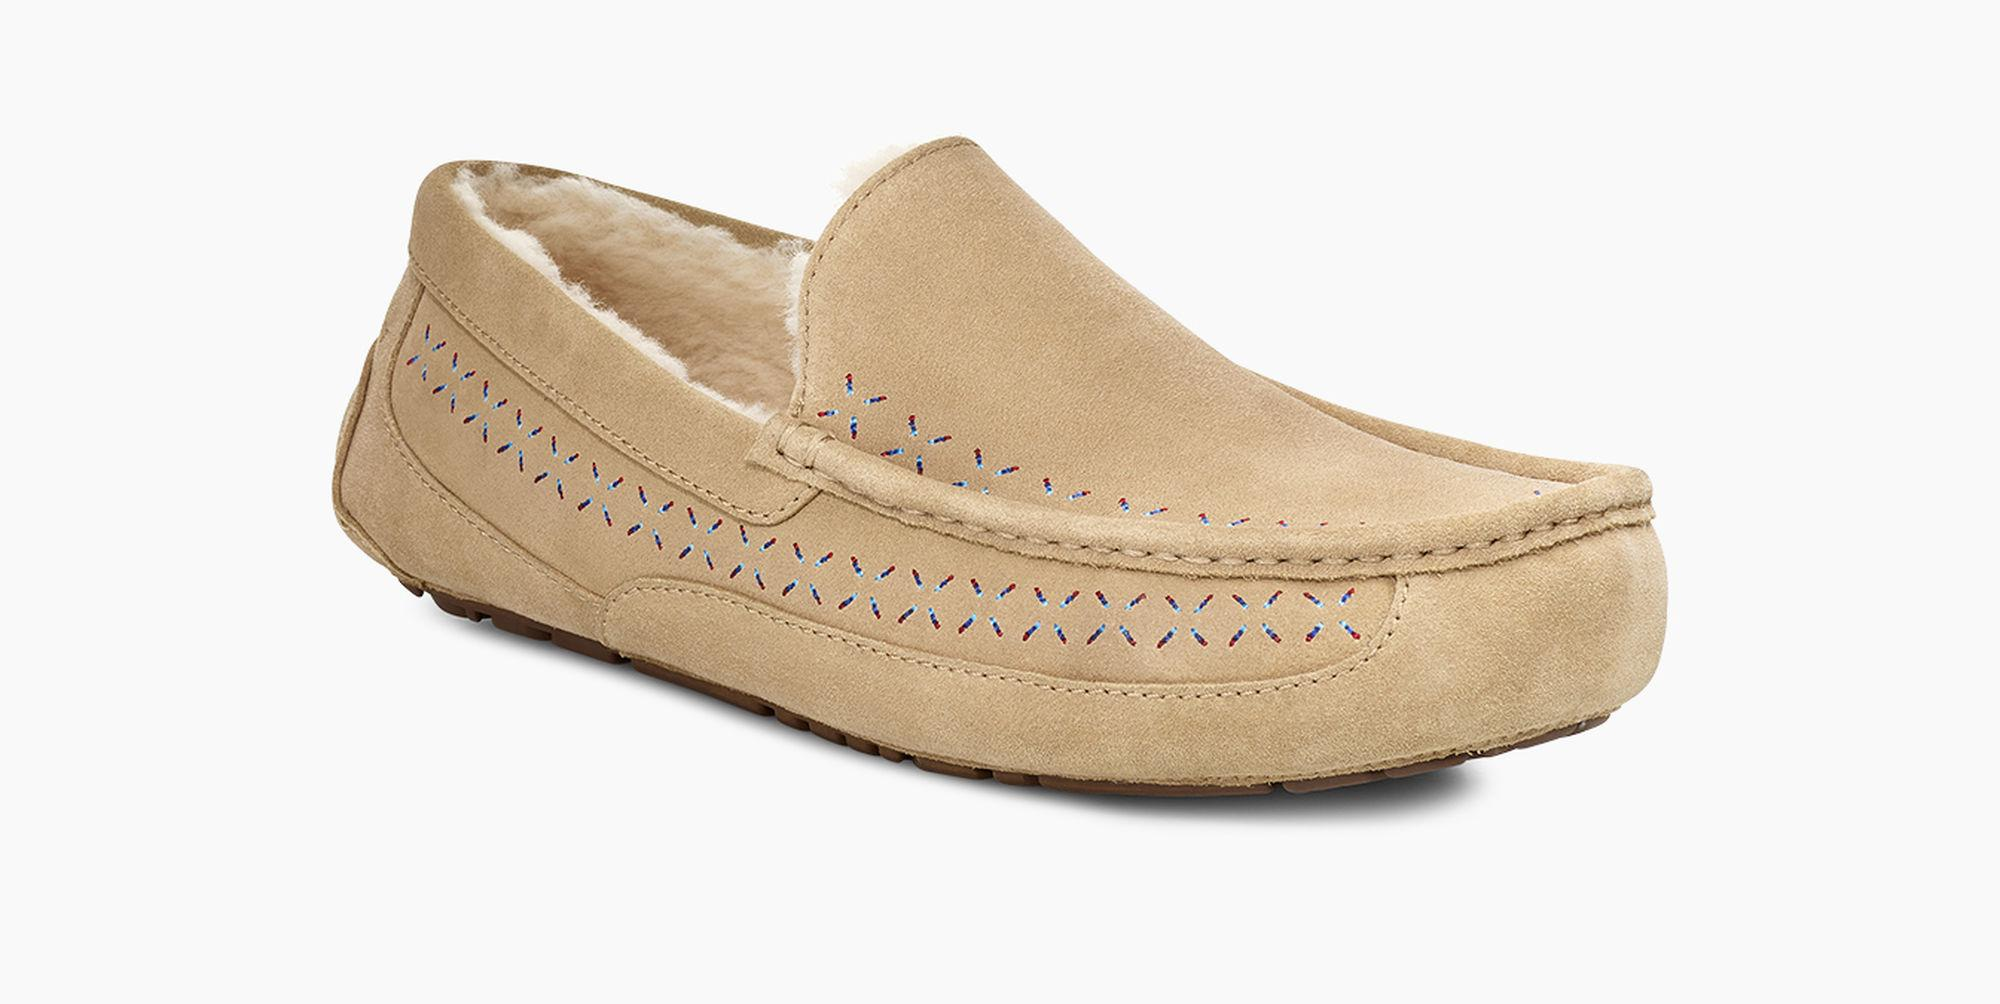 37121c2ab9f Ugg Natural Ascot White Mountaineering Slipper Ascot White Mountaineering  Slipper for men